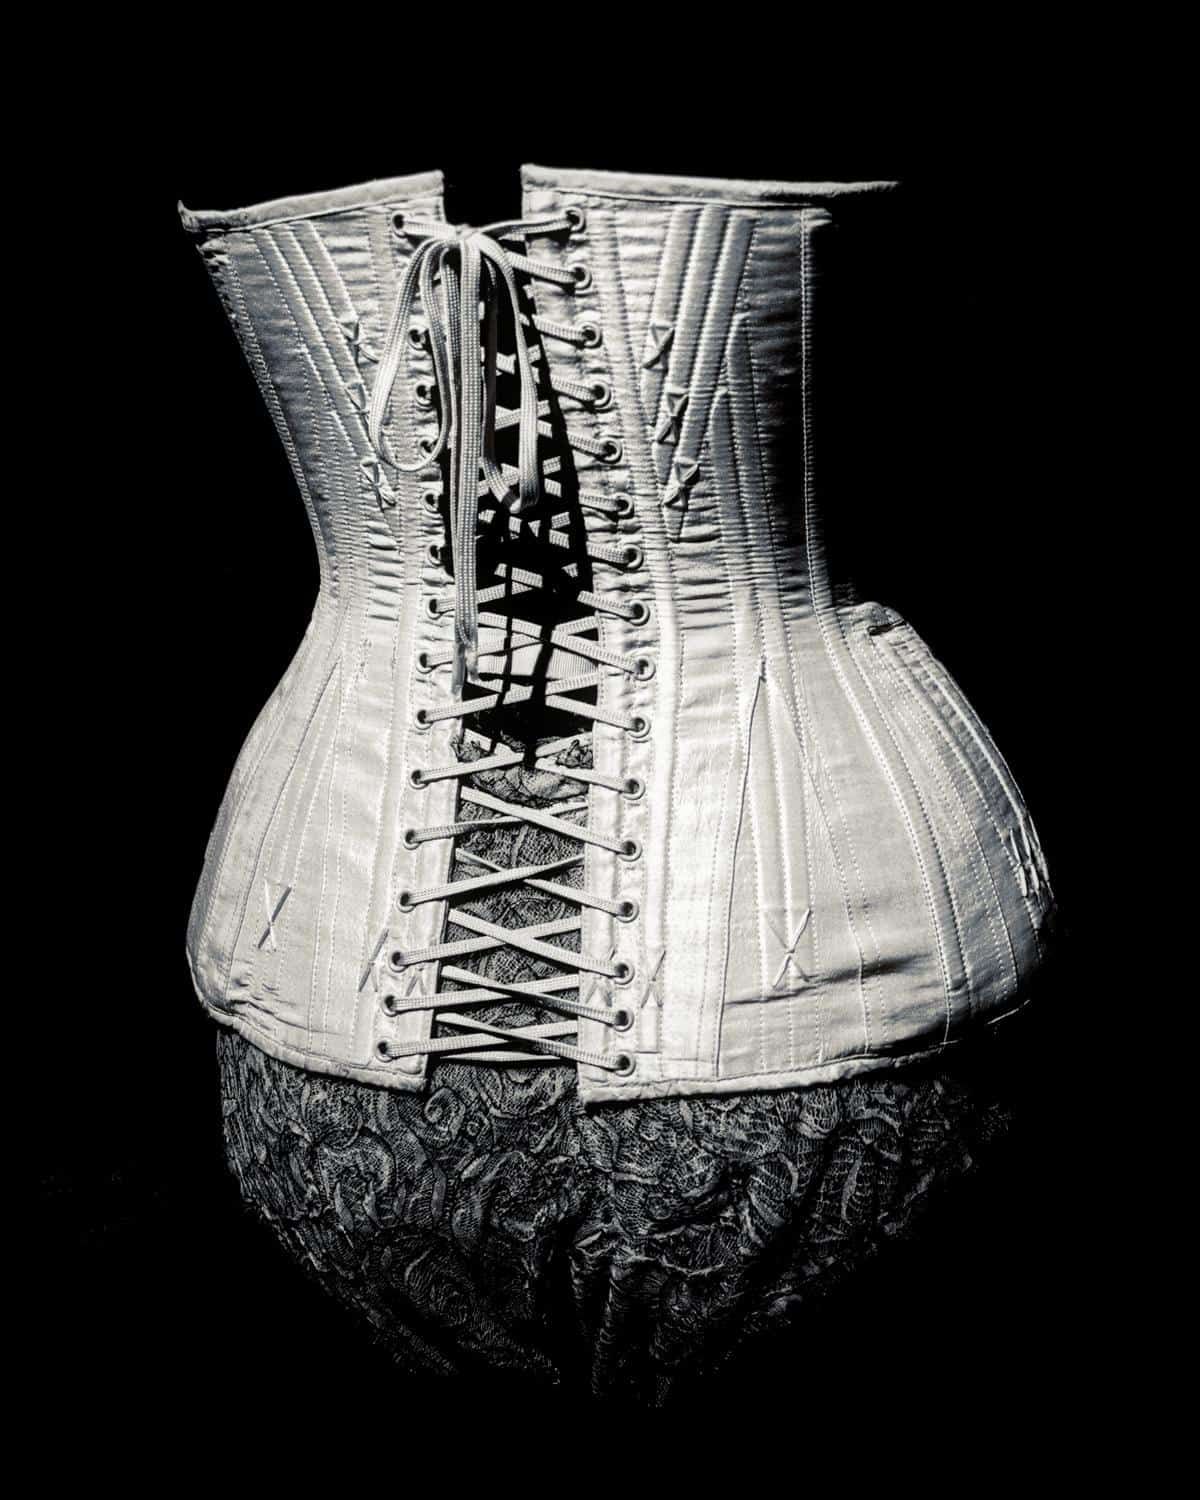 Black and White image of a corset designed by Jean Paul Gaultier